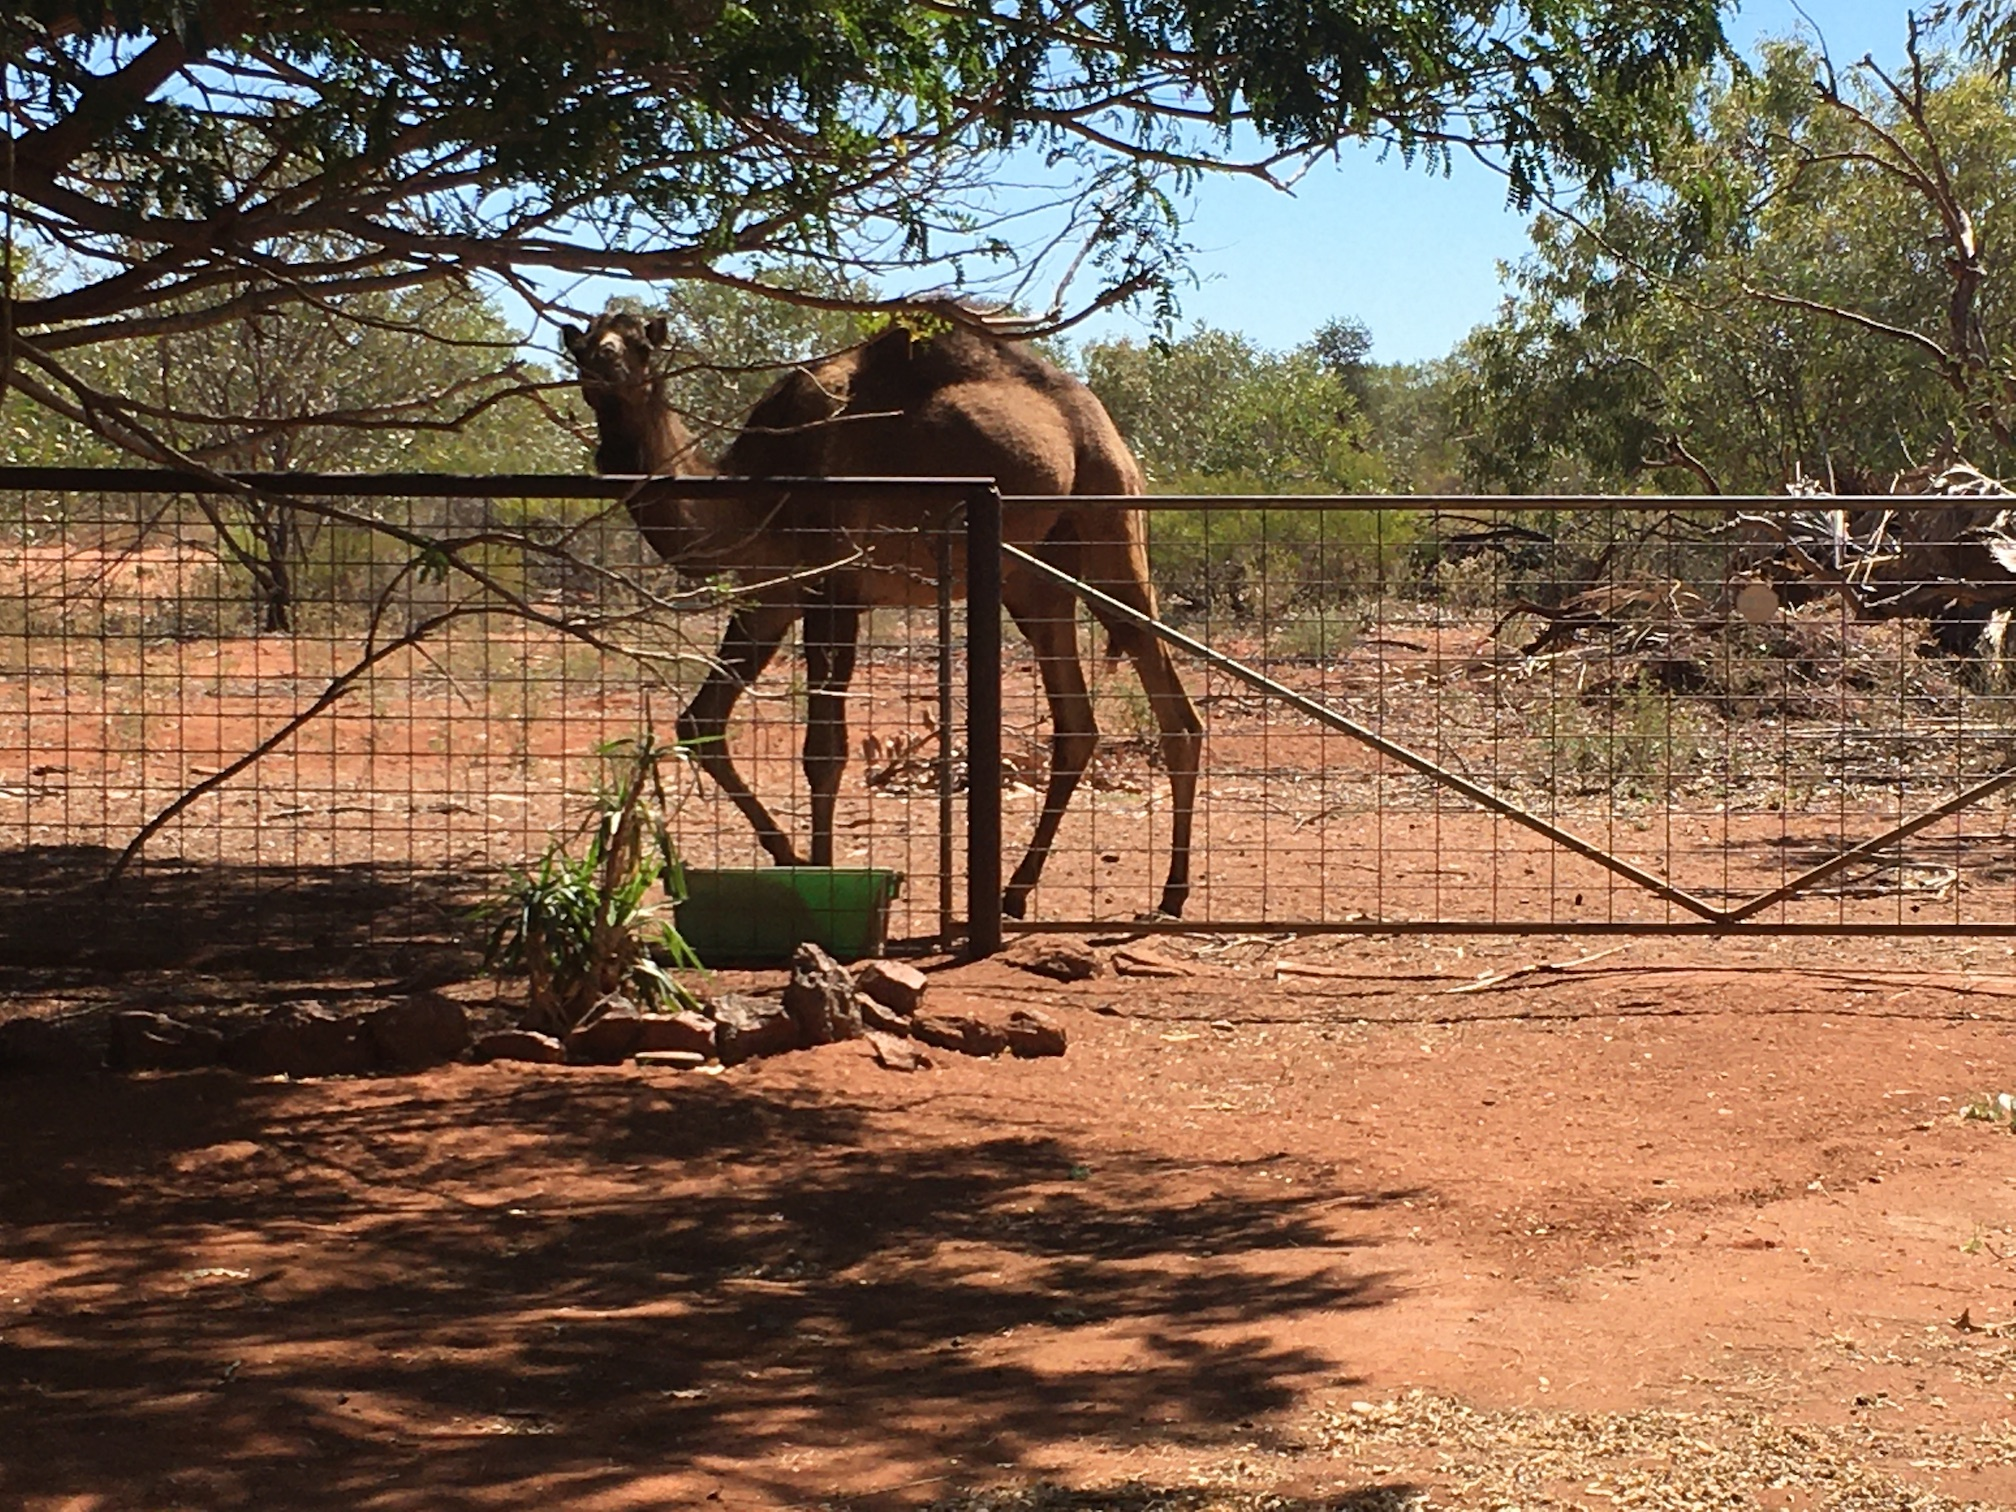 2020-07-31 Camel at Indee station